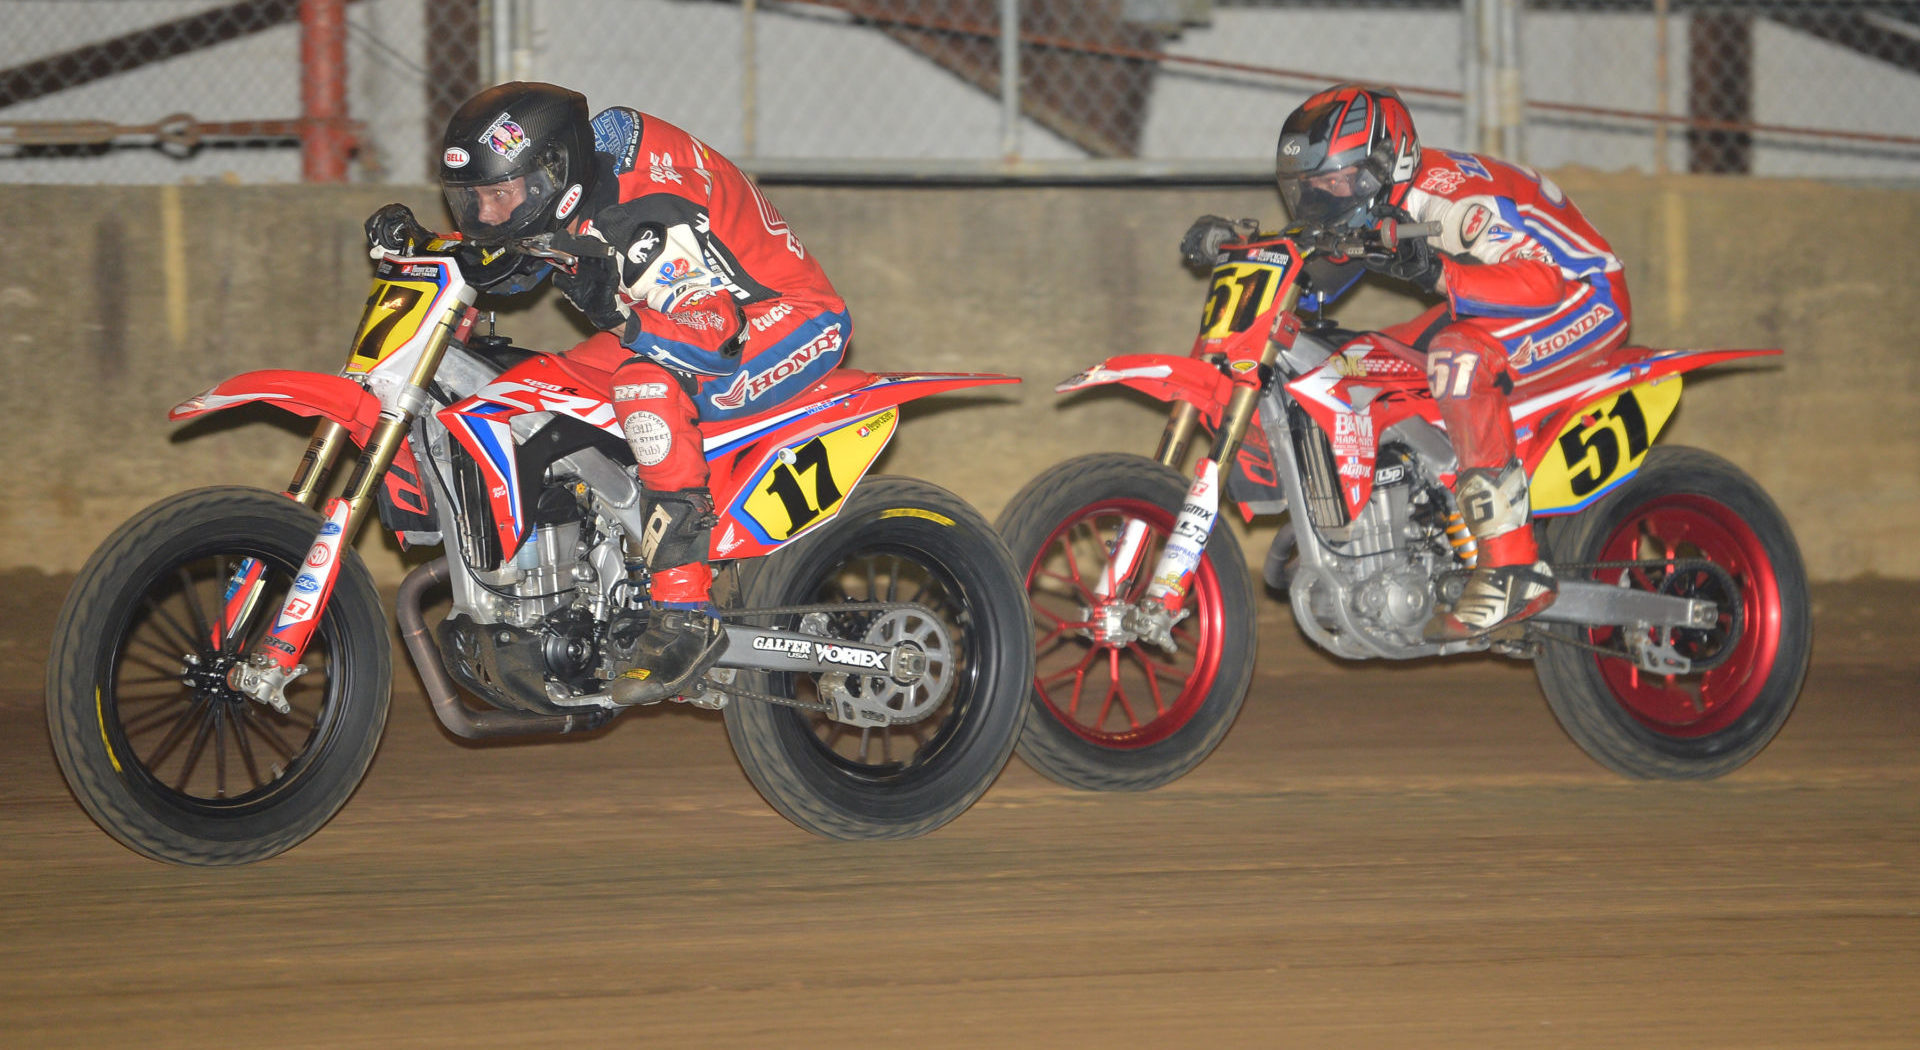 Henry Wiles (17), Cole Zabala (51), and Trevor Brunner (not pictured) will ride Turner Racing Honda CRF450R motorcycles in the 2021 AFT Singles Championship. Photo courtesy American Honda.